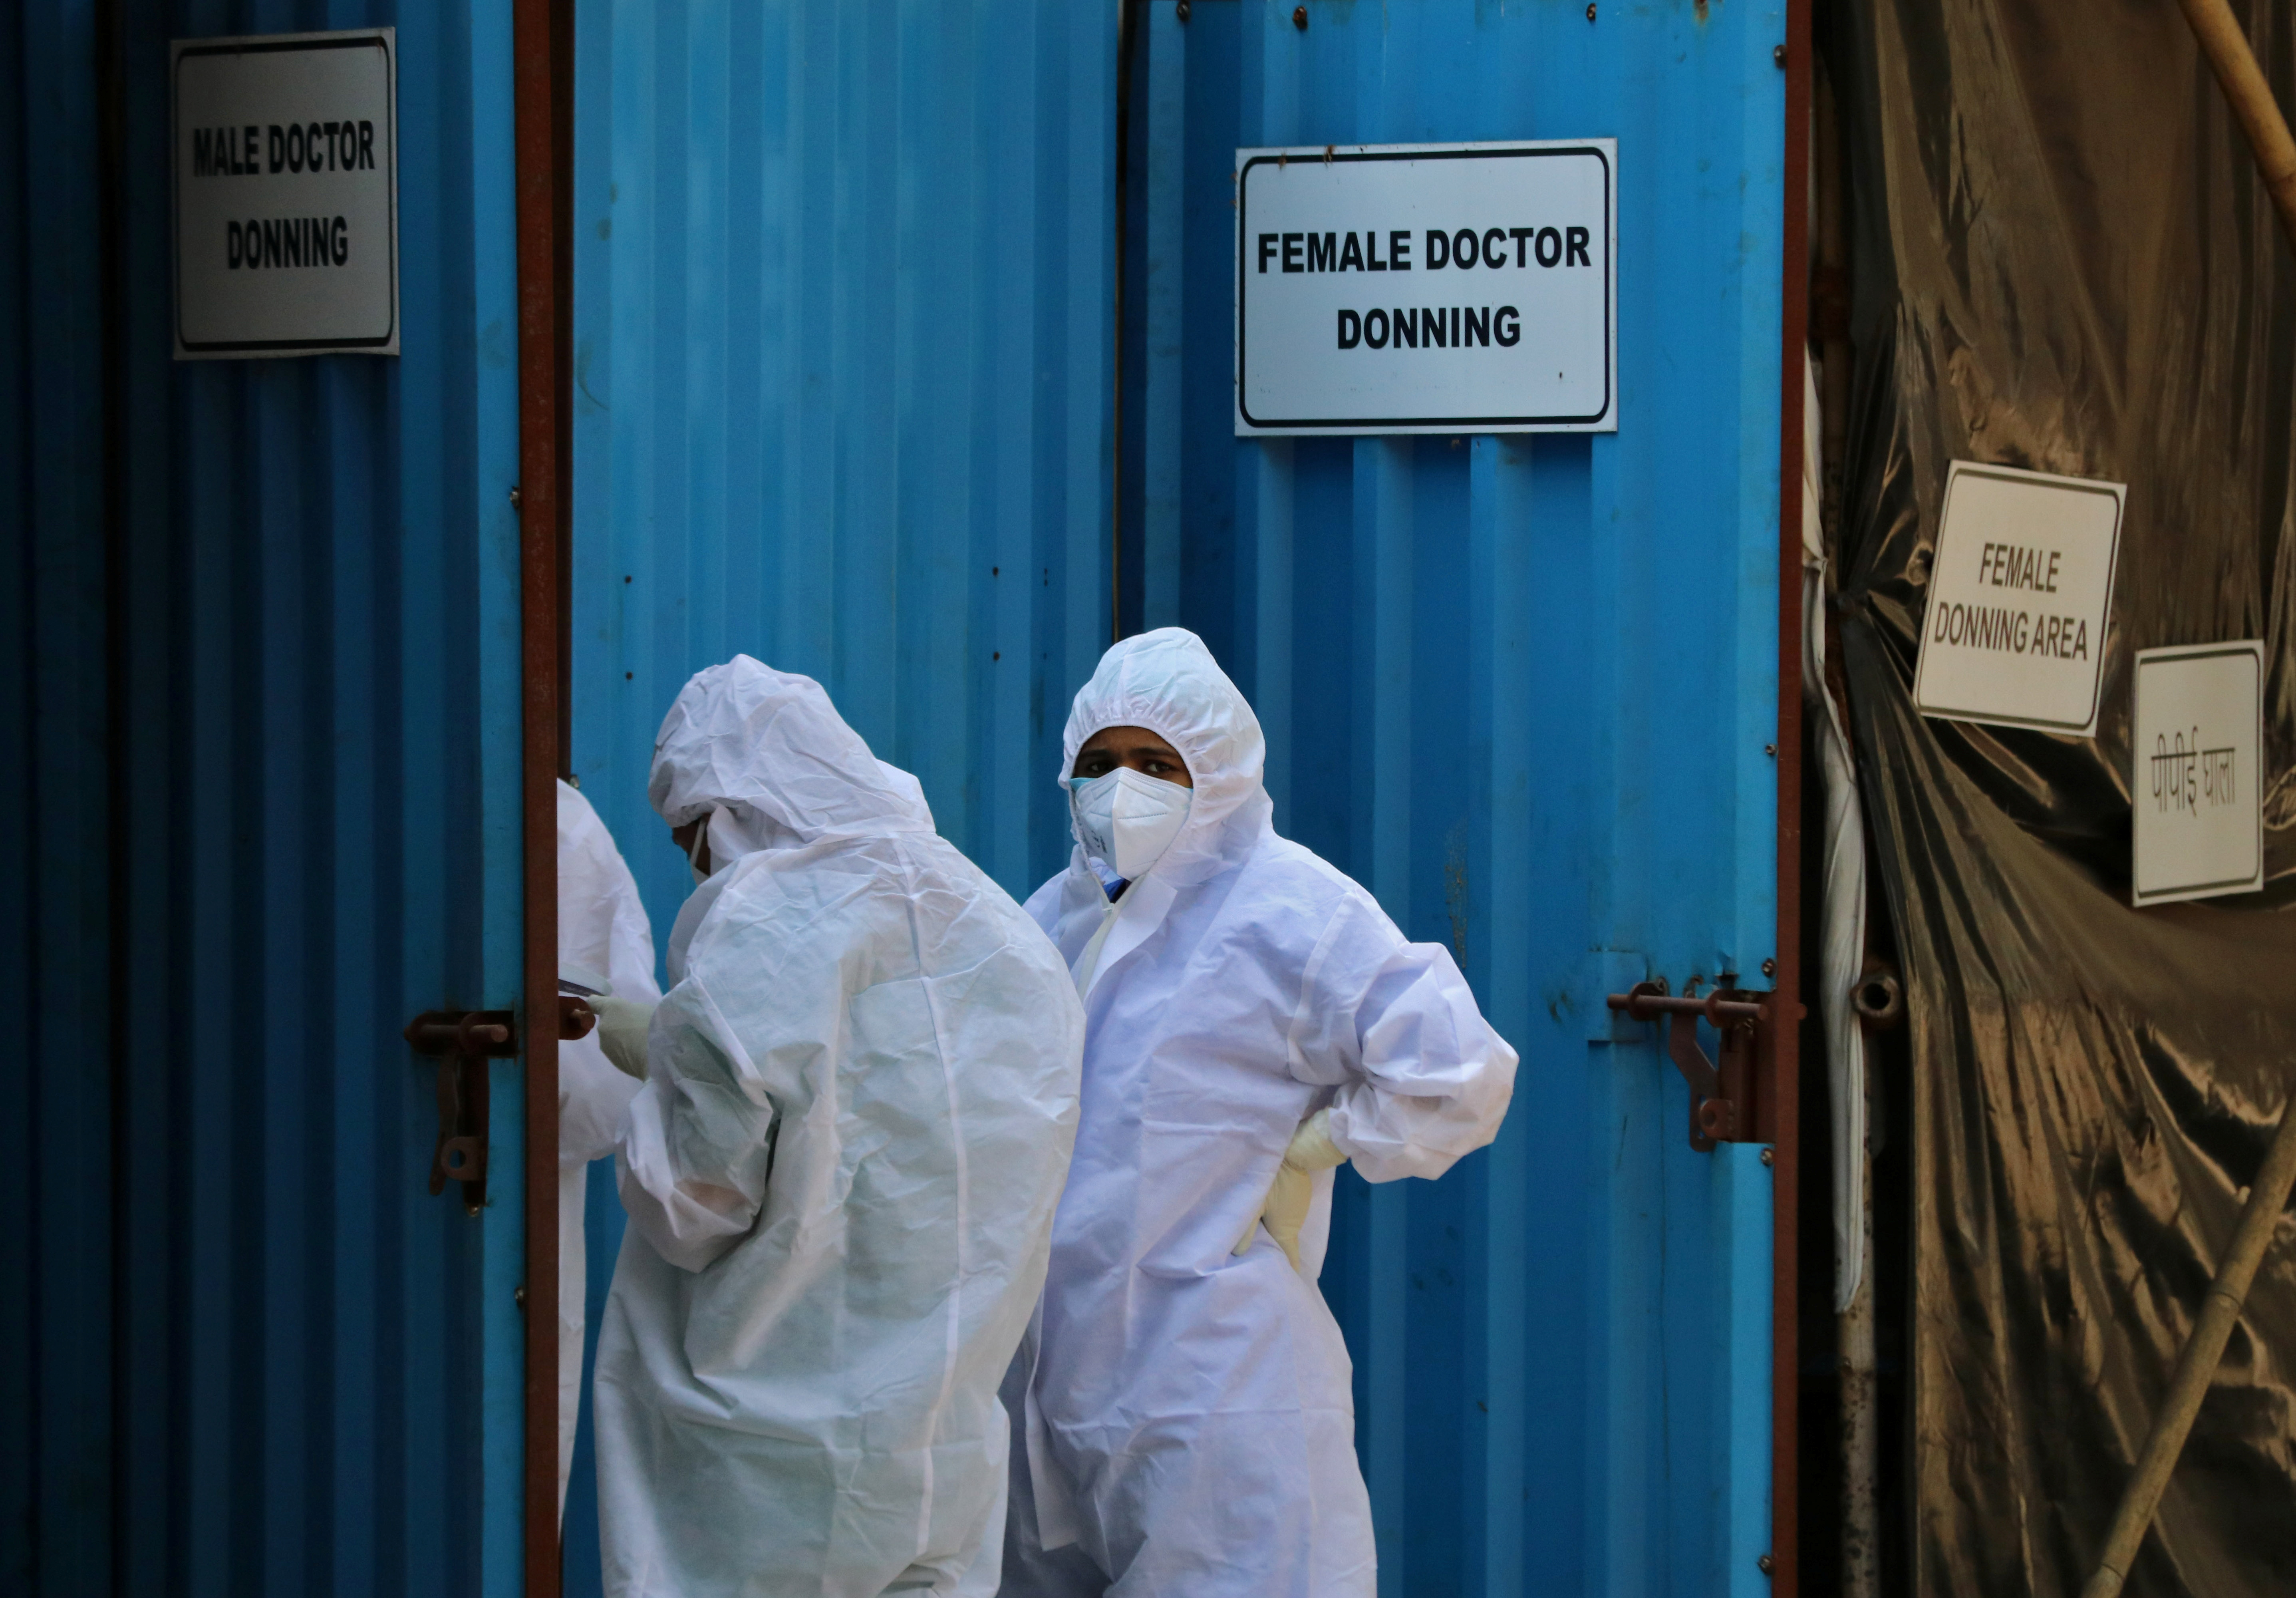 Healthcare workers wearing personal protective equipment (PPE) stand outside a donning area at a COVID-19 care facility, amidst the spread of the coronavirus disease (COVID-19) in Mumbai, India, May 4, 2021. REUTERS/Niharika Kulkarni